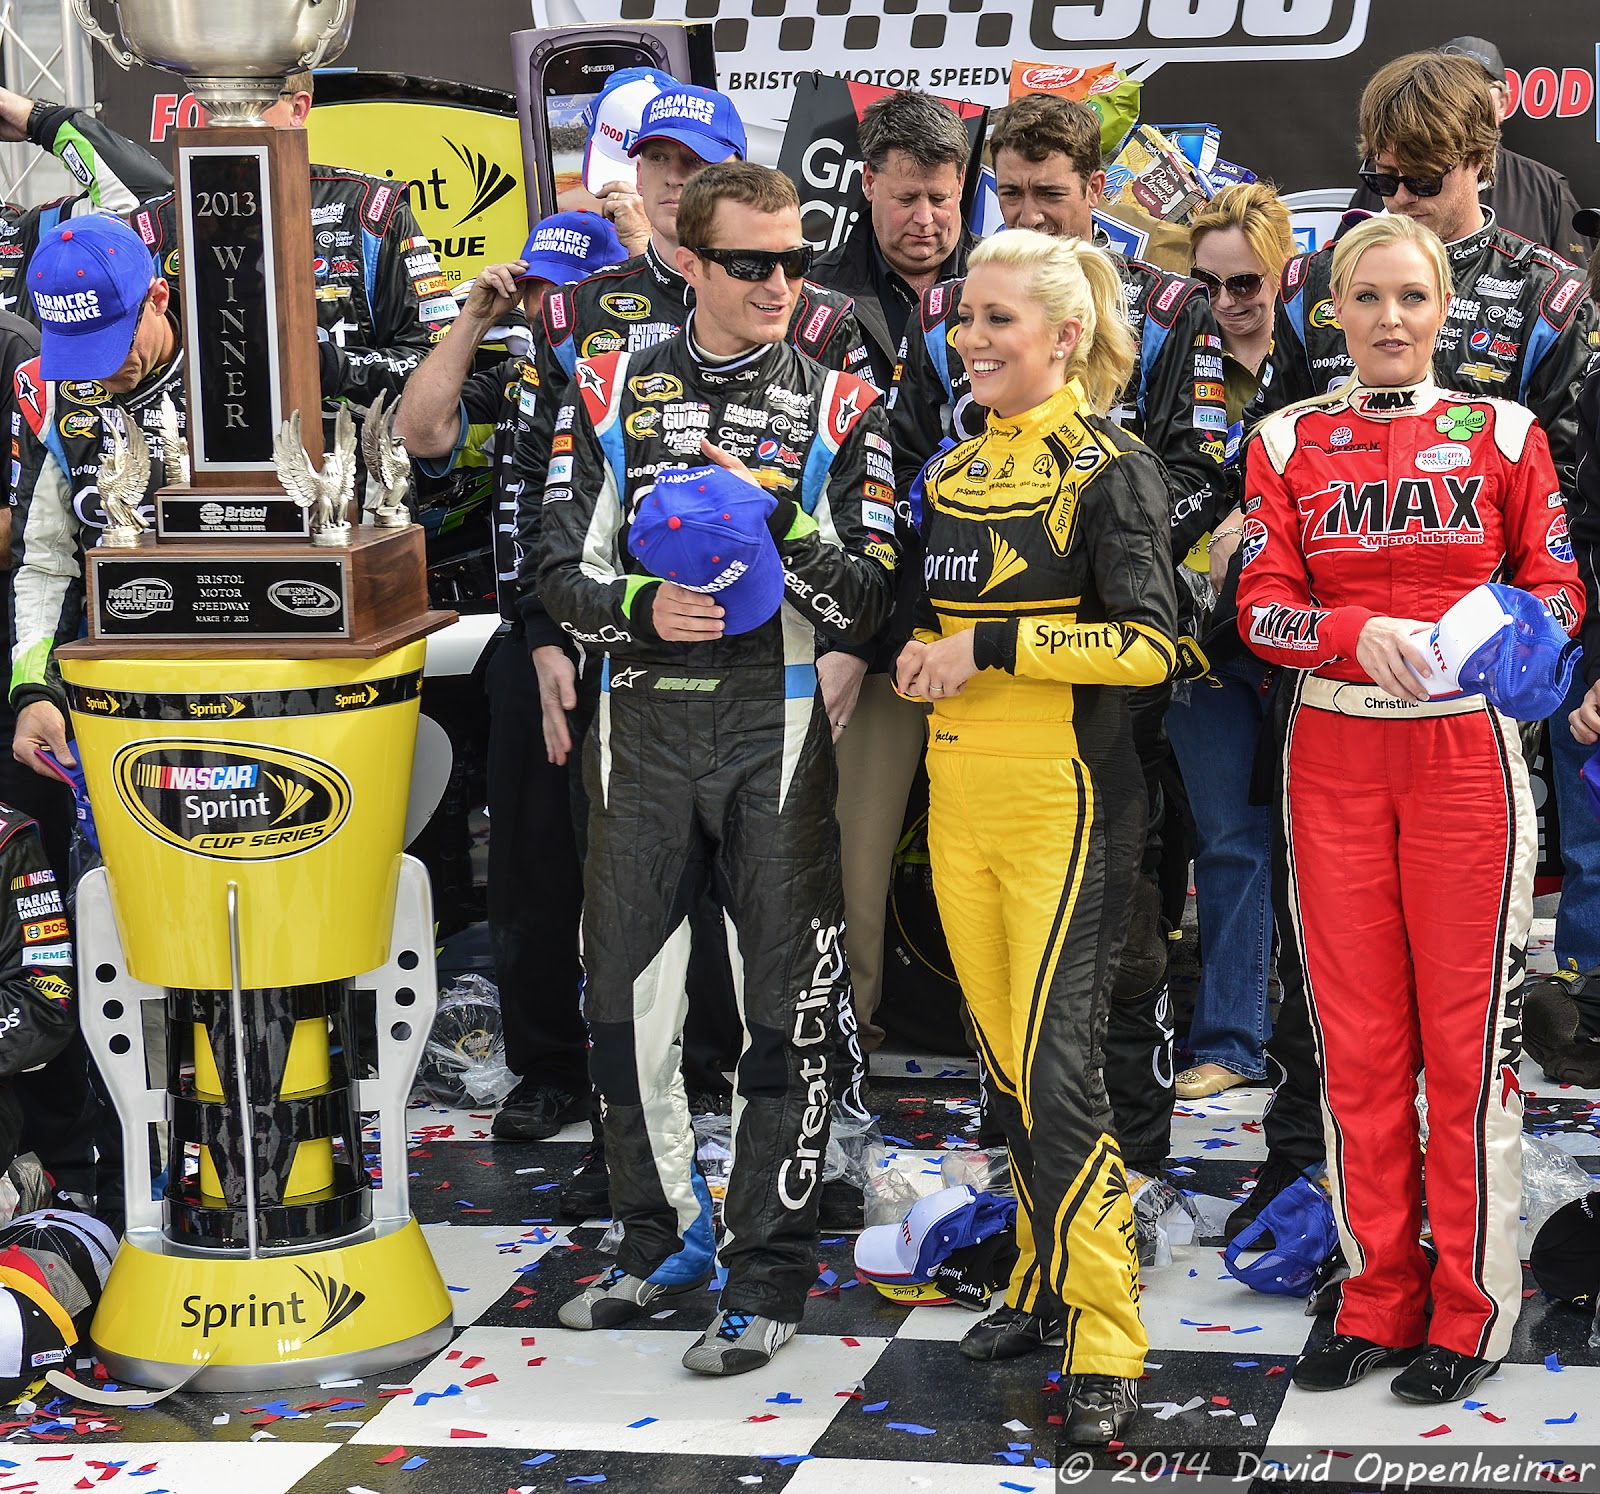 Kasey Kahne in Winner's Circle at Bristol Motor Speedway during NASCAR Sprint Cup Food City 500